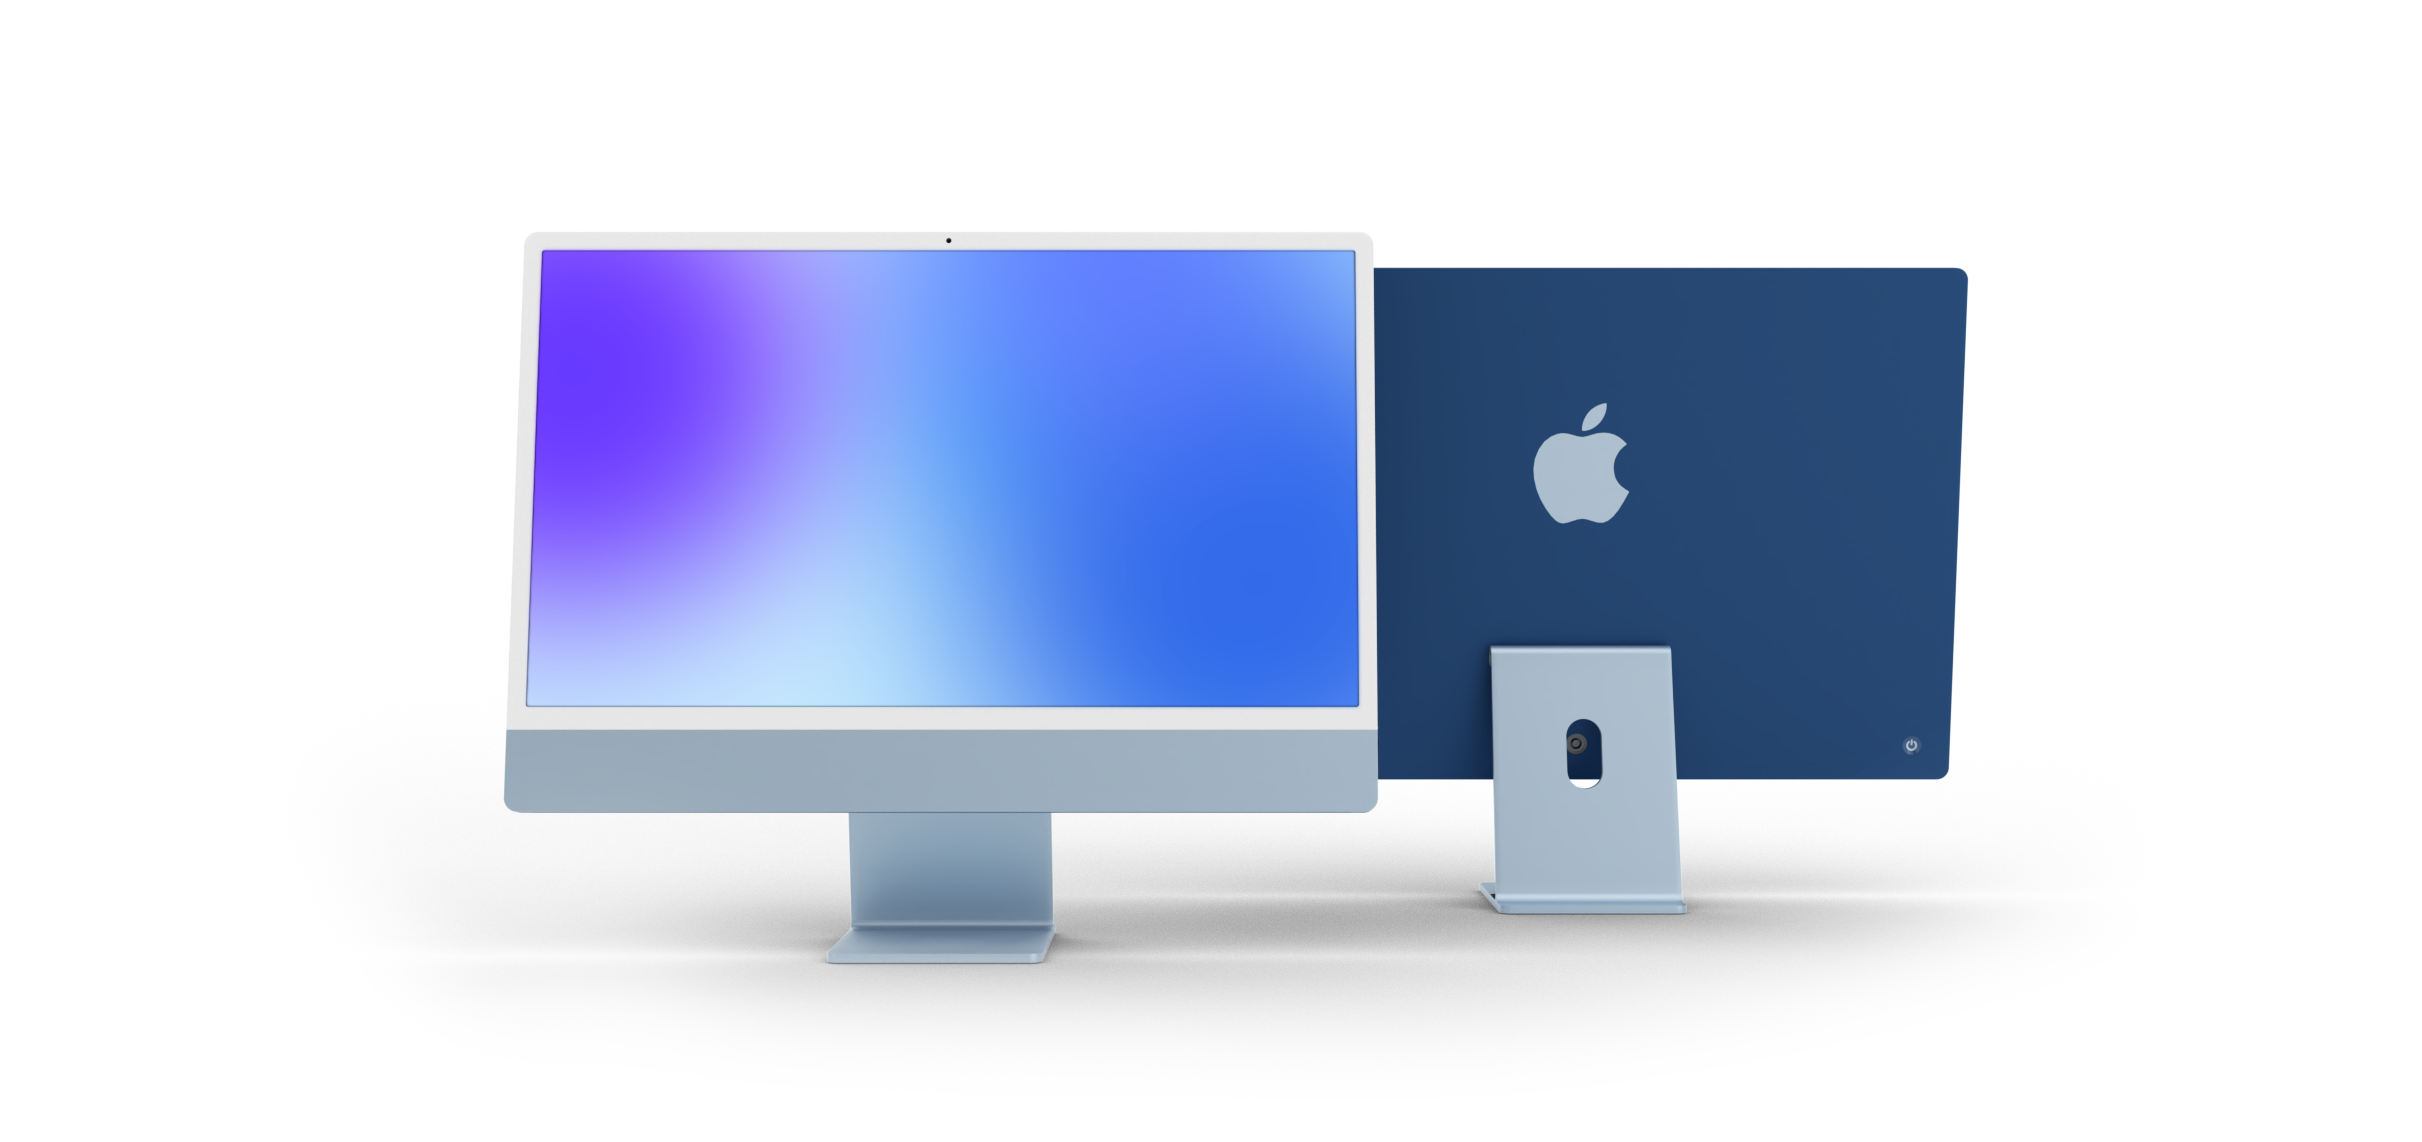 Register for The Drop for a chance to win an iMac!